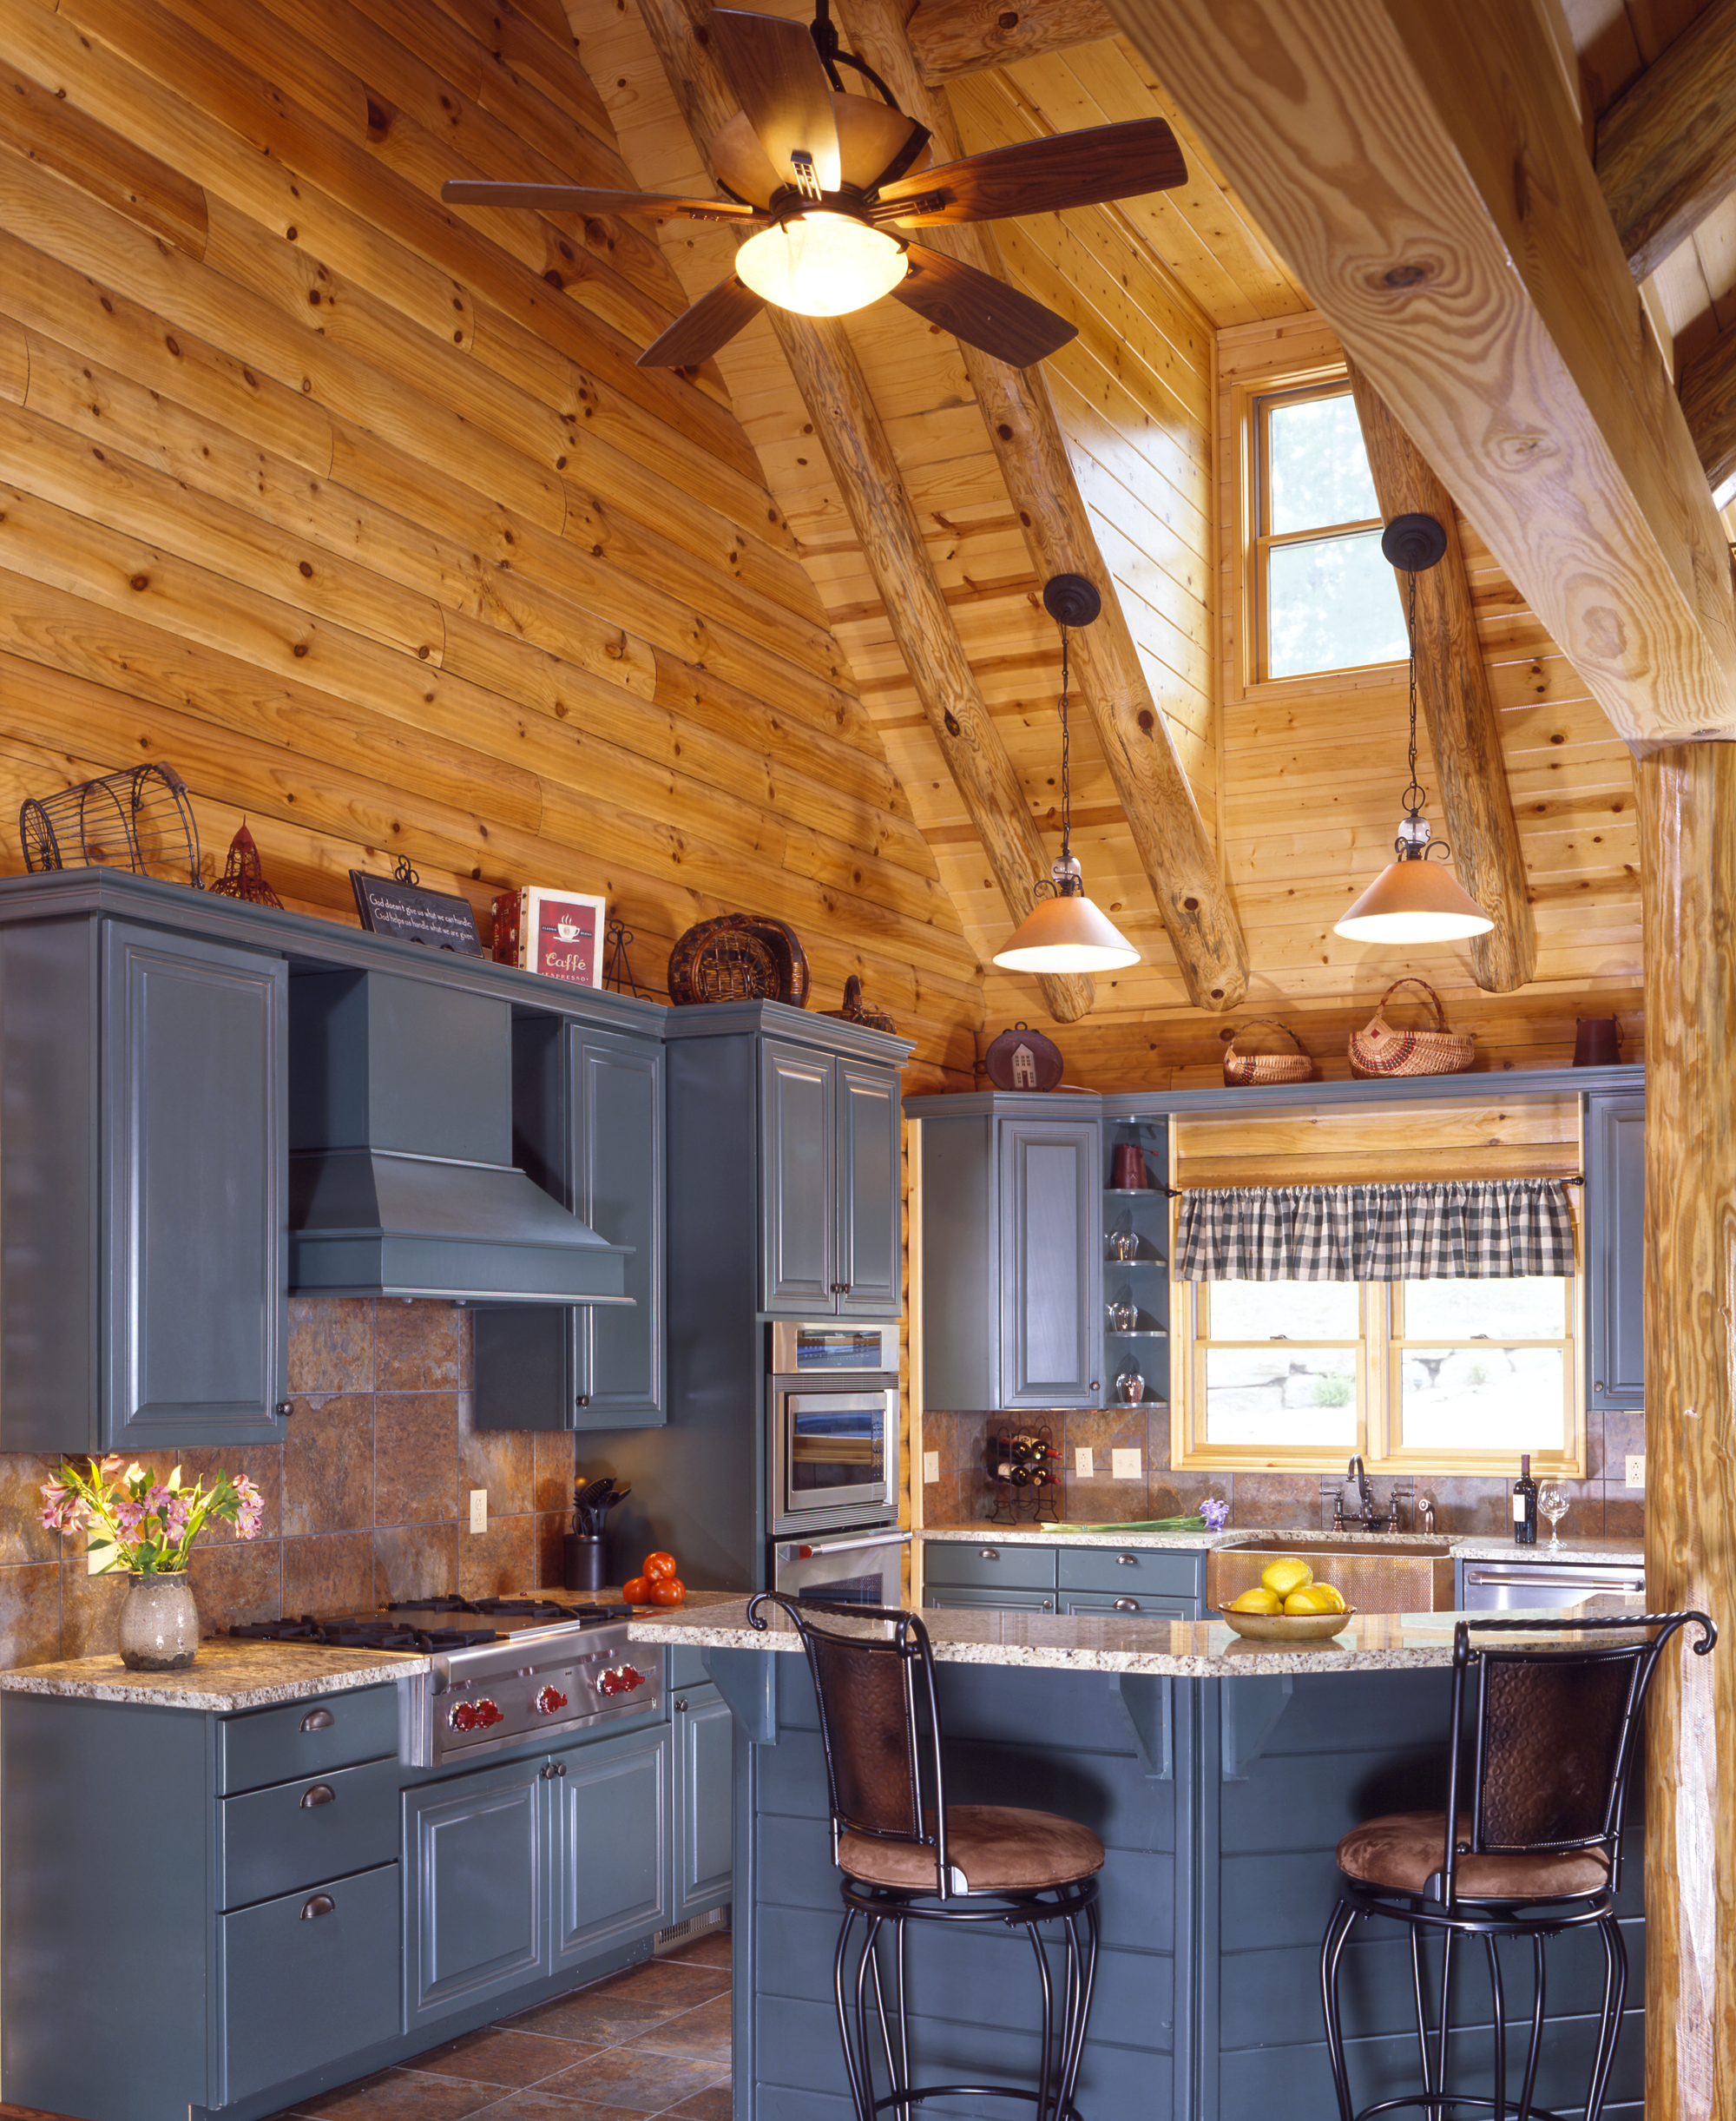 Log Home Kitchen Layout: The Work Triangle And Beyond